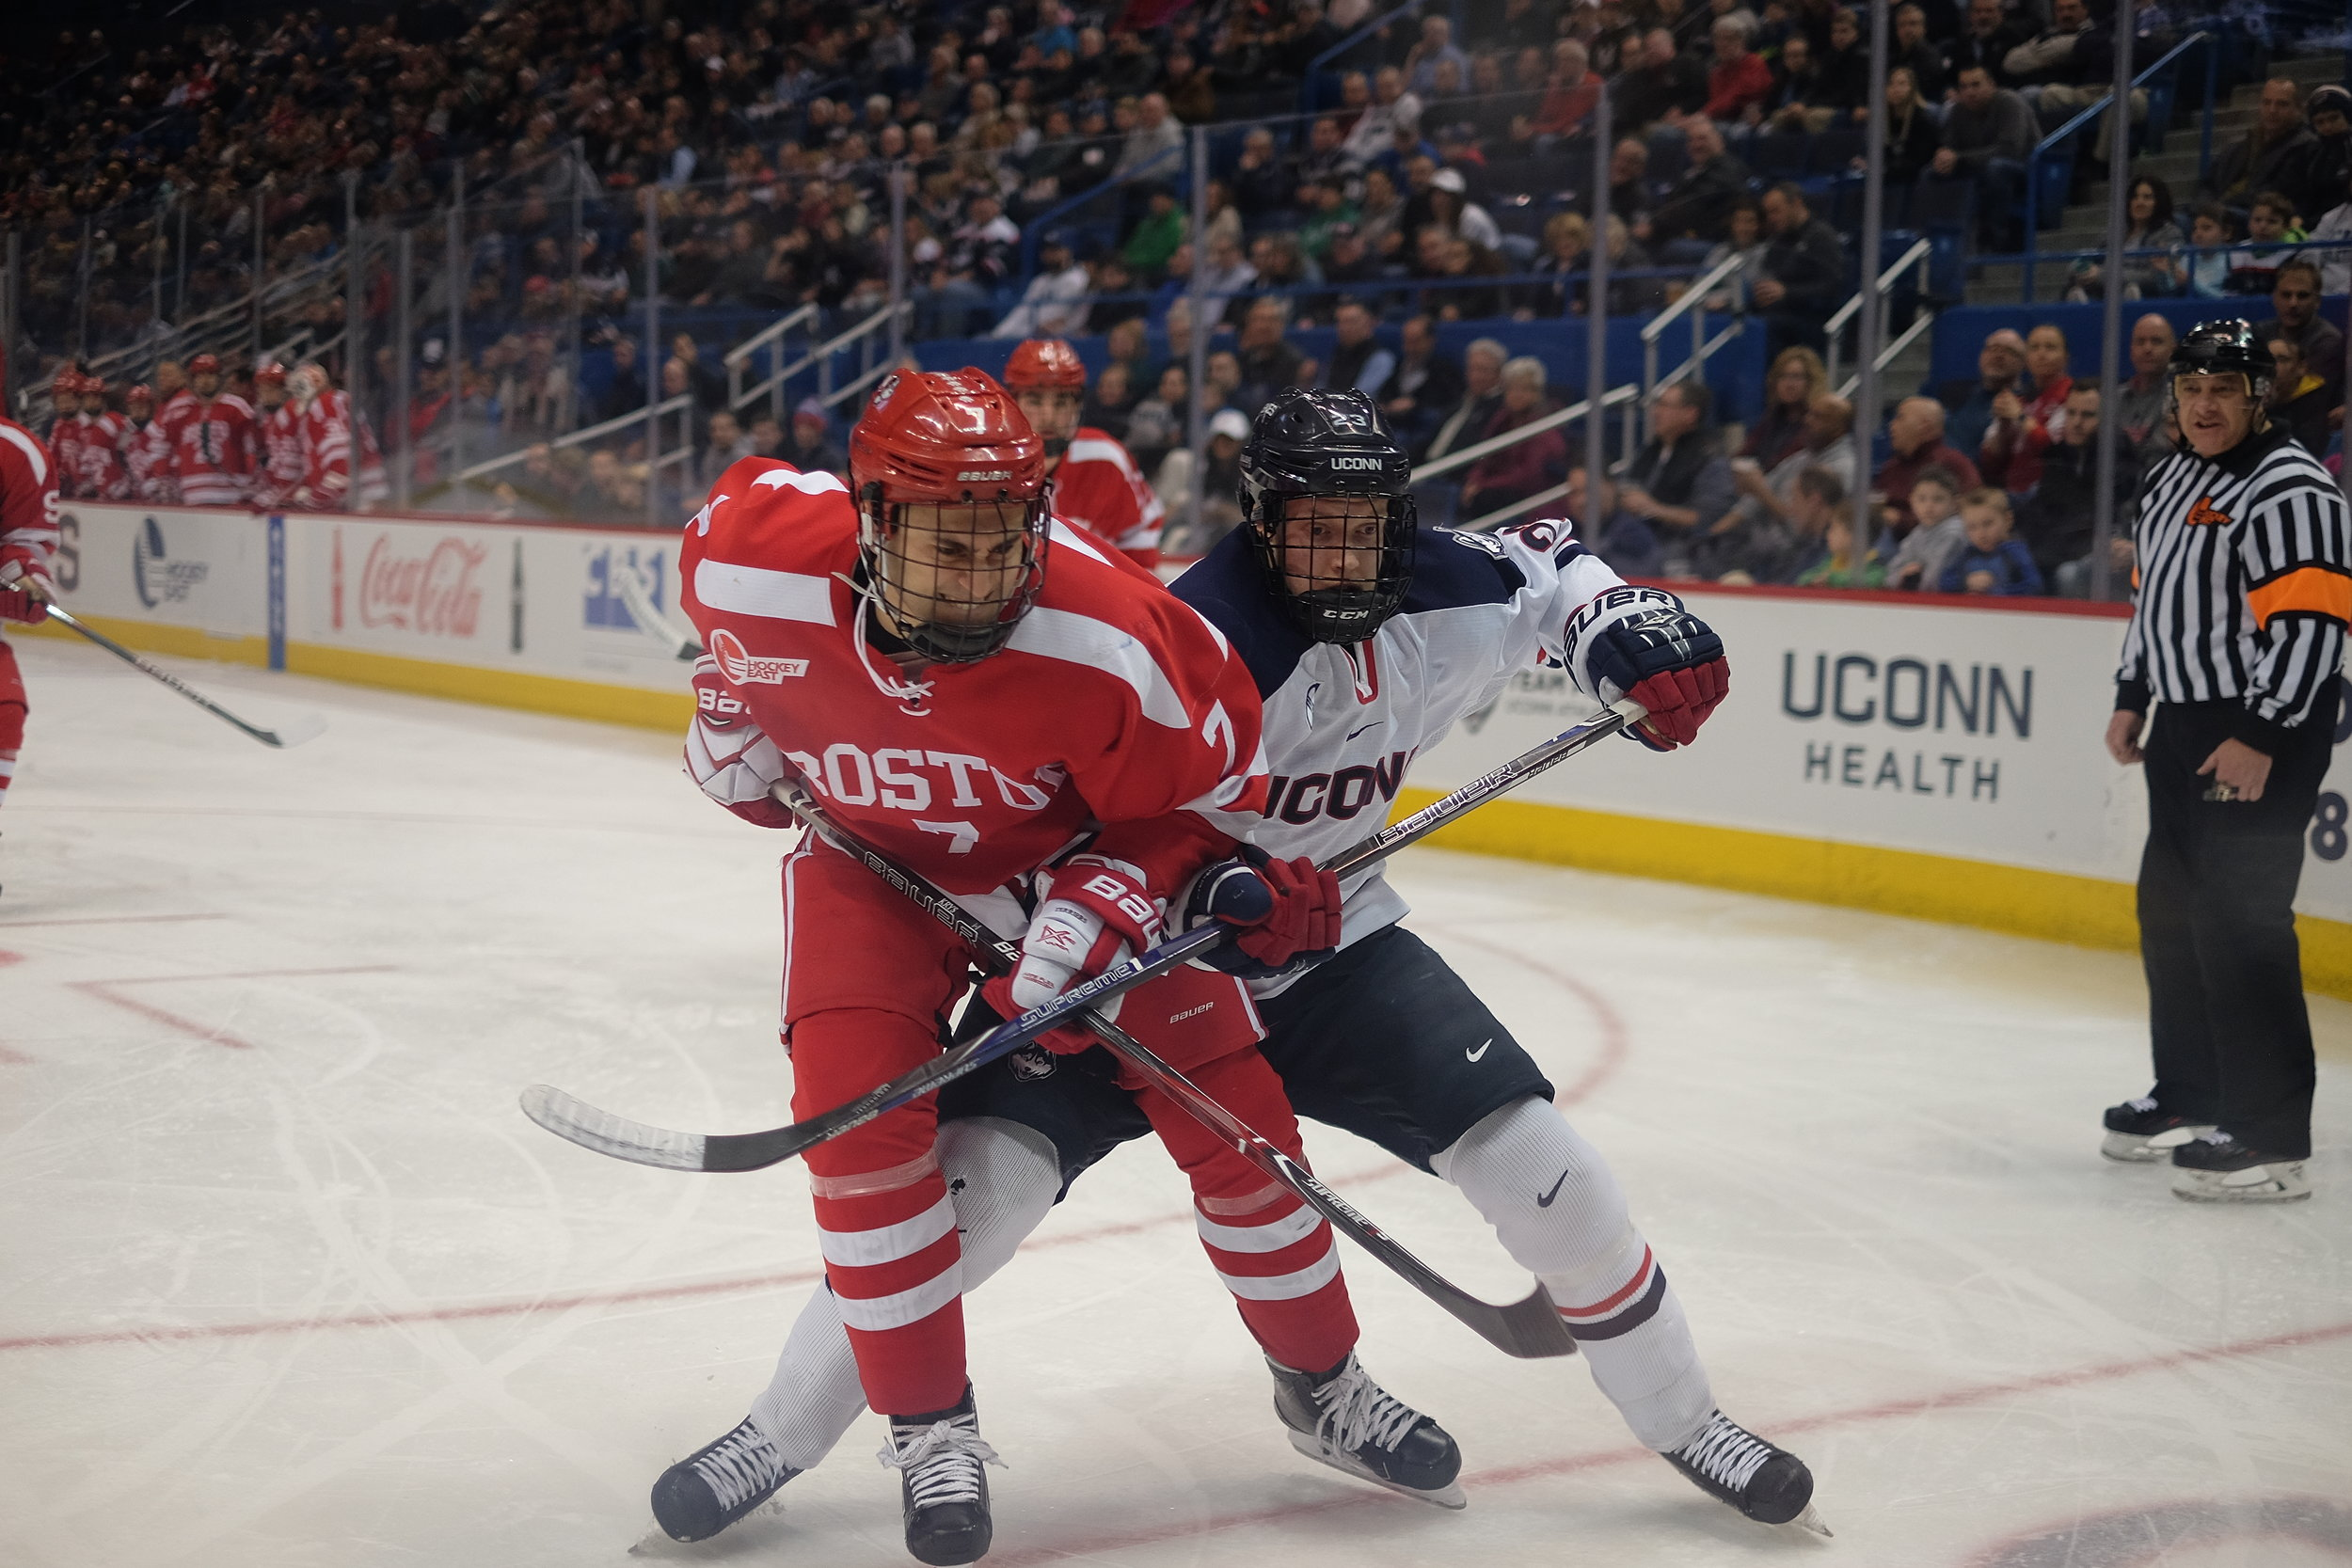 The Huskies had their best season yet in the Hockey East. (Jon Sammis/The Daily Campus)